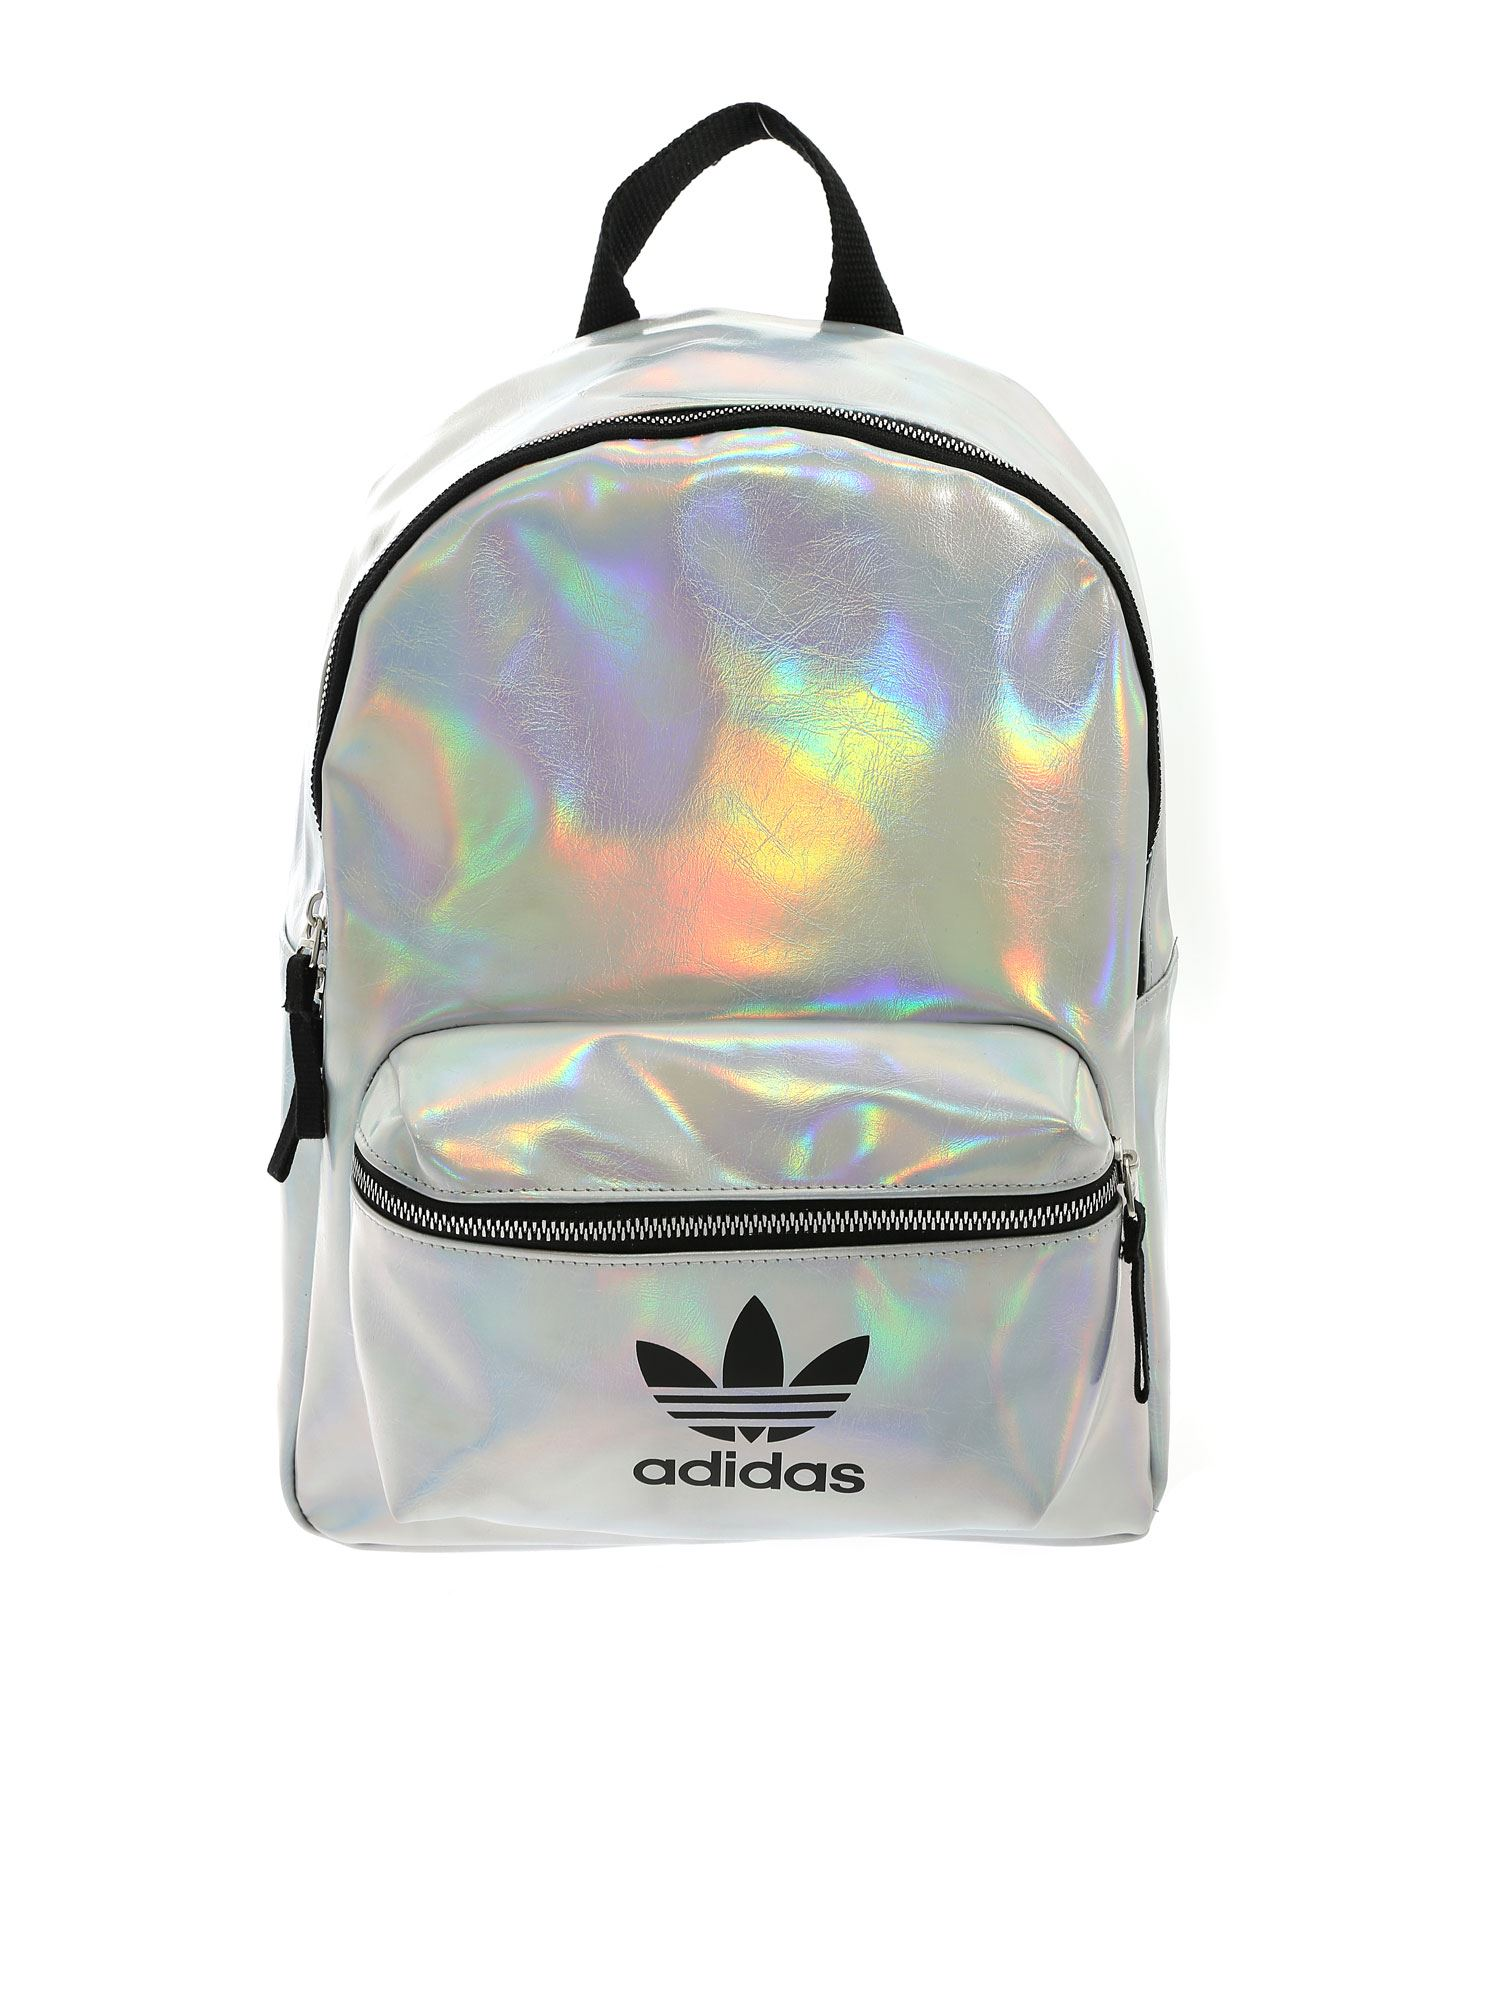 Adidas Originals ADIDAS ORIGINALS METALLIC BACKPACK IN SILVER